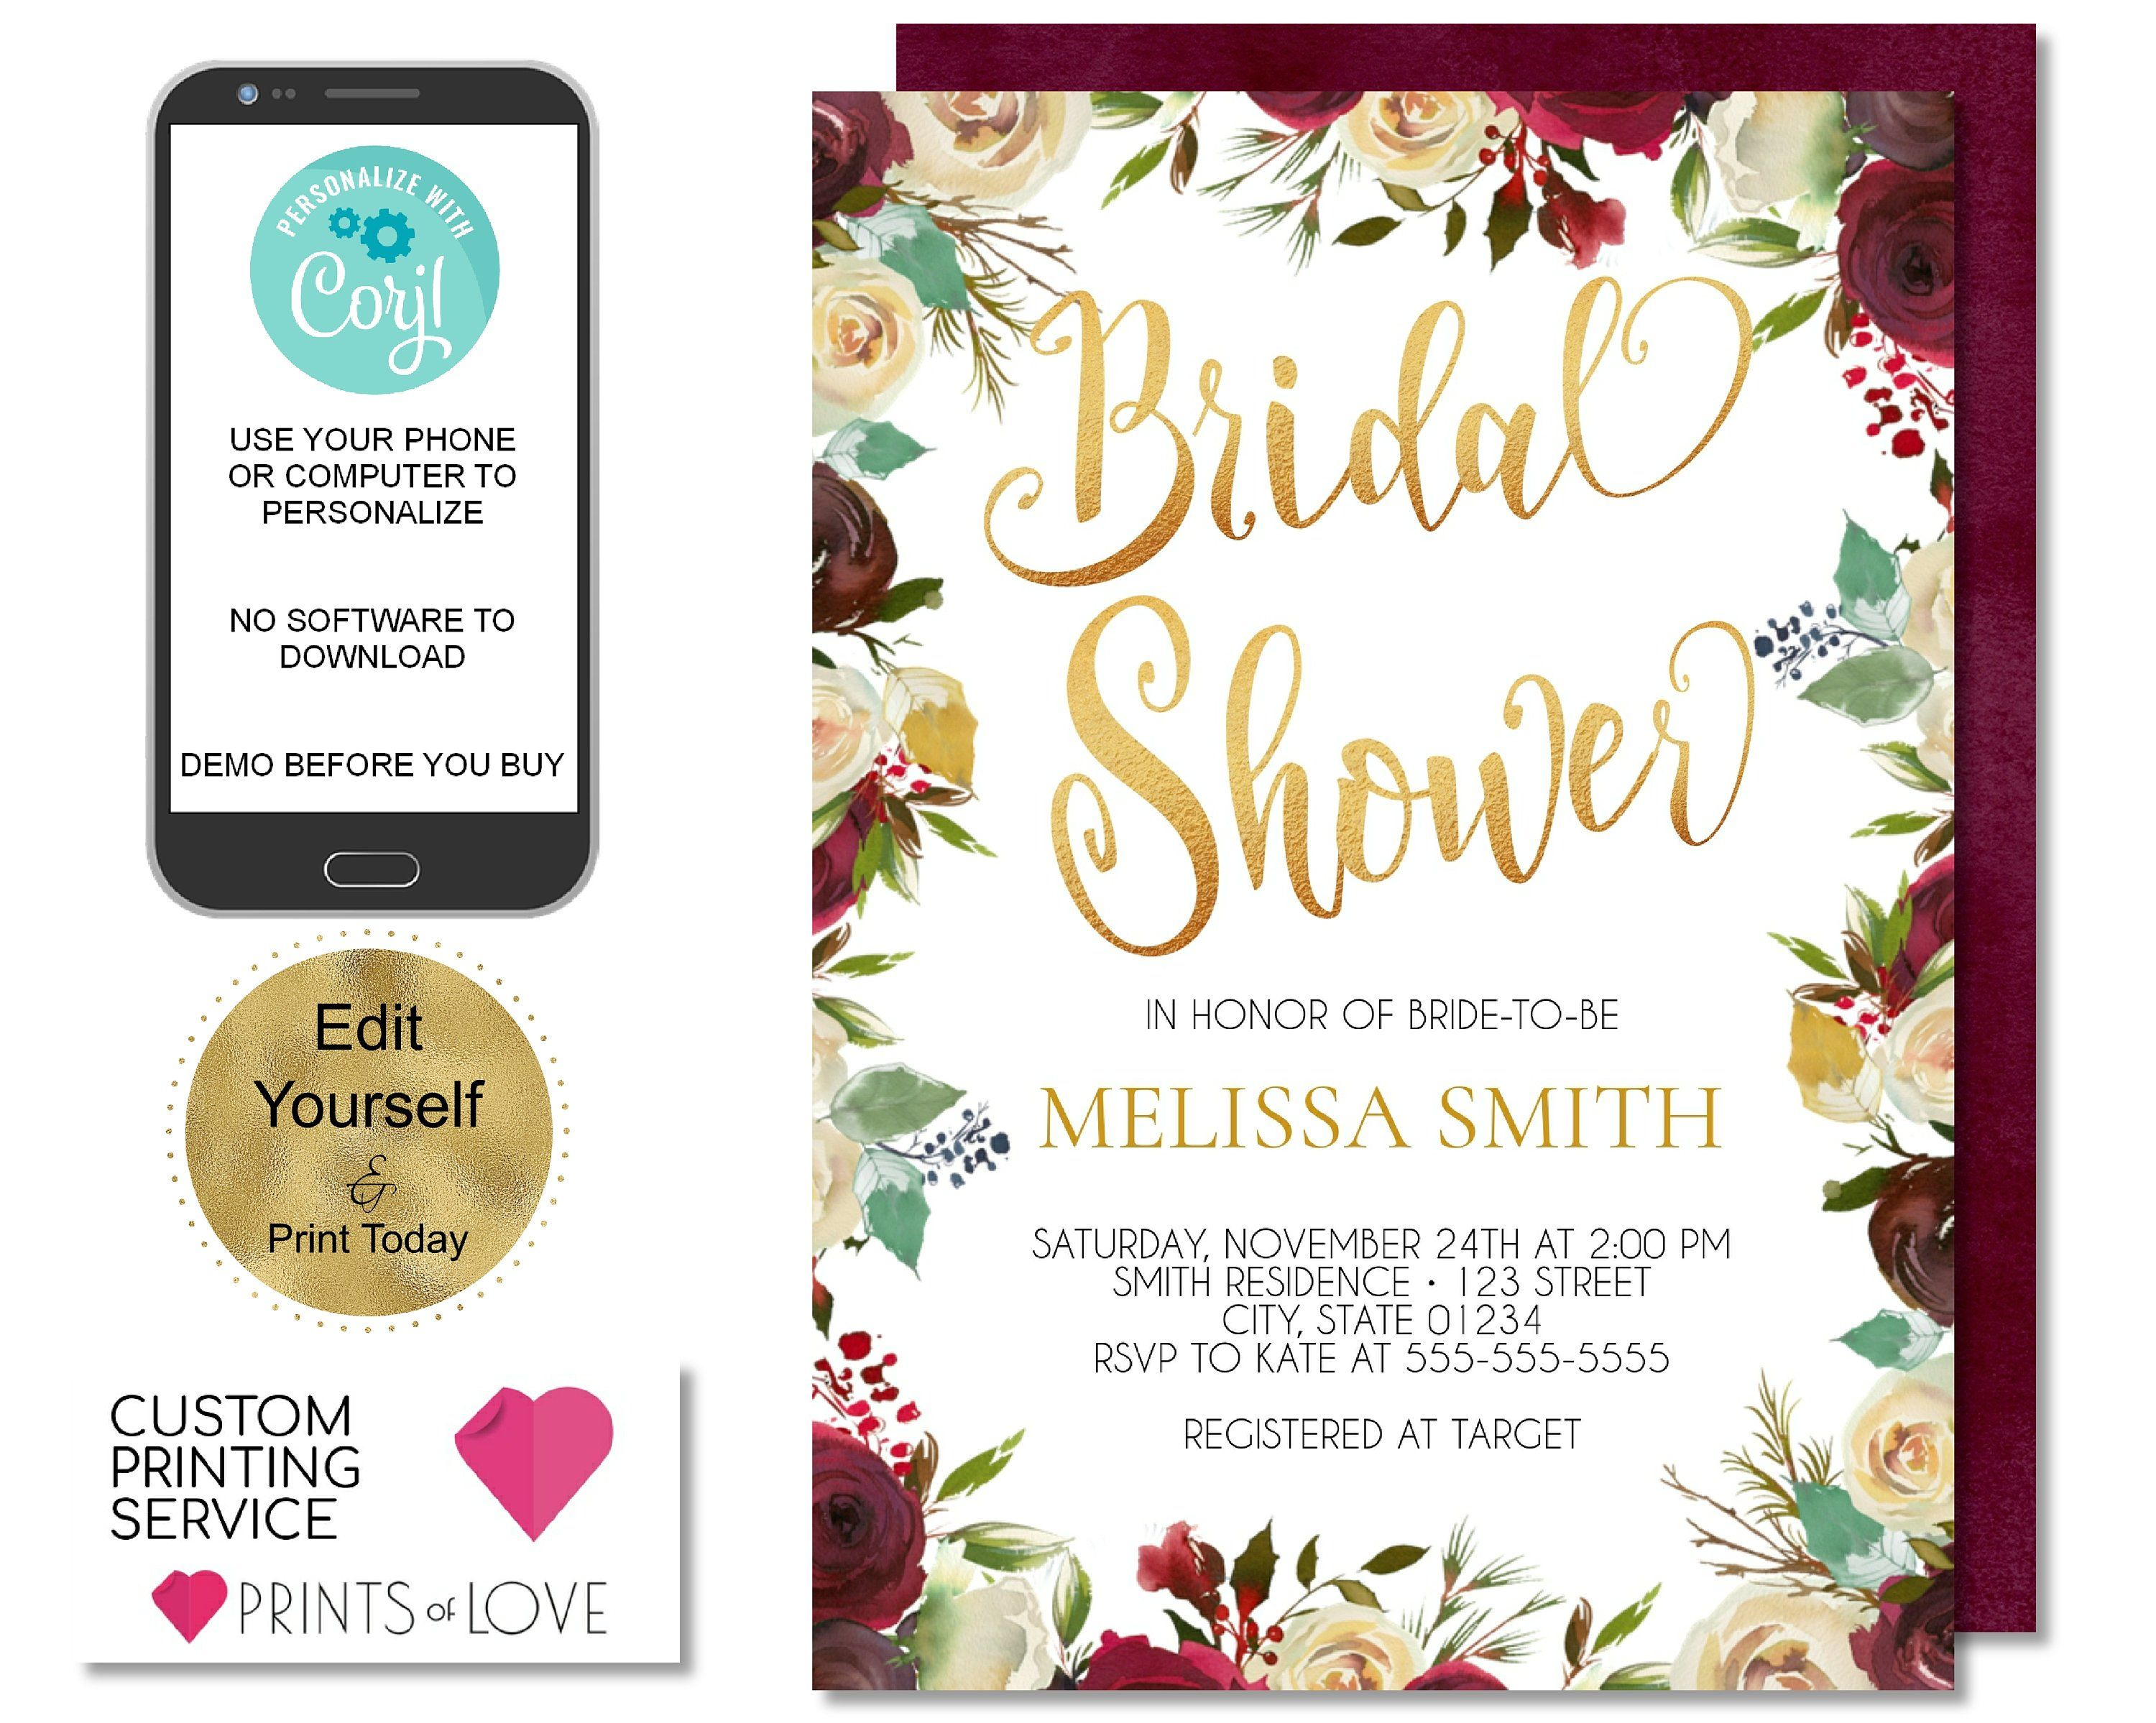 holiday bridal shower invitation christmas bridal shower invite winter bridal christmas florals red white holly gold editable invite by